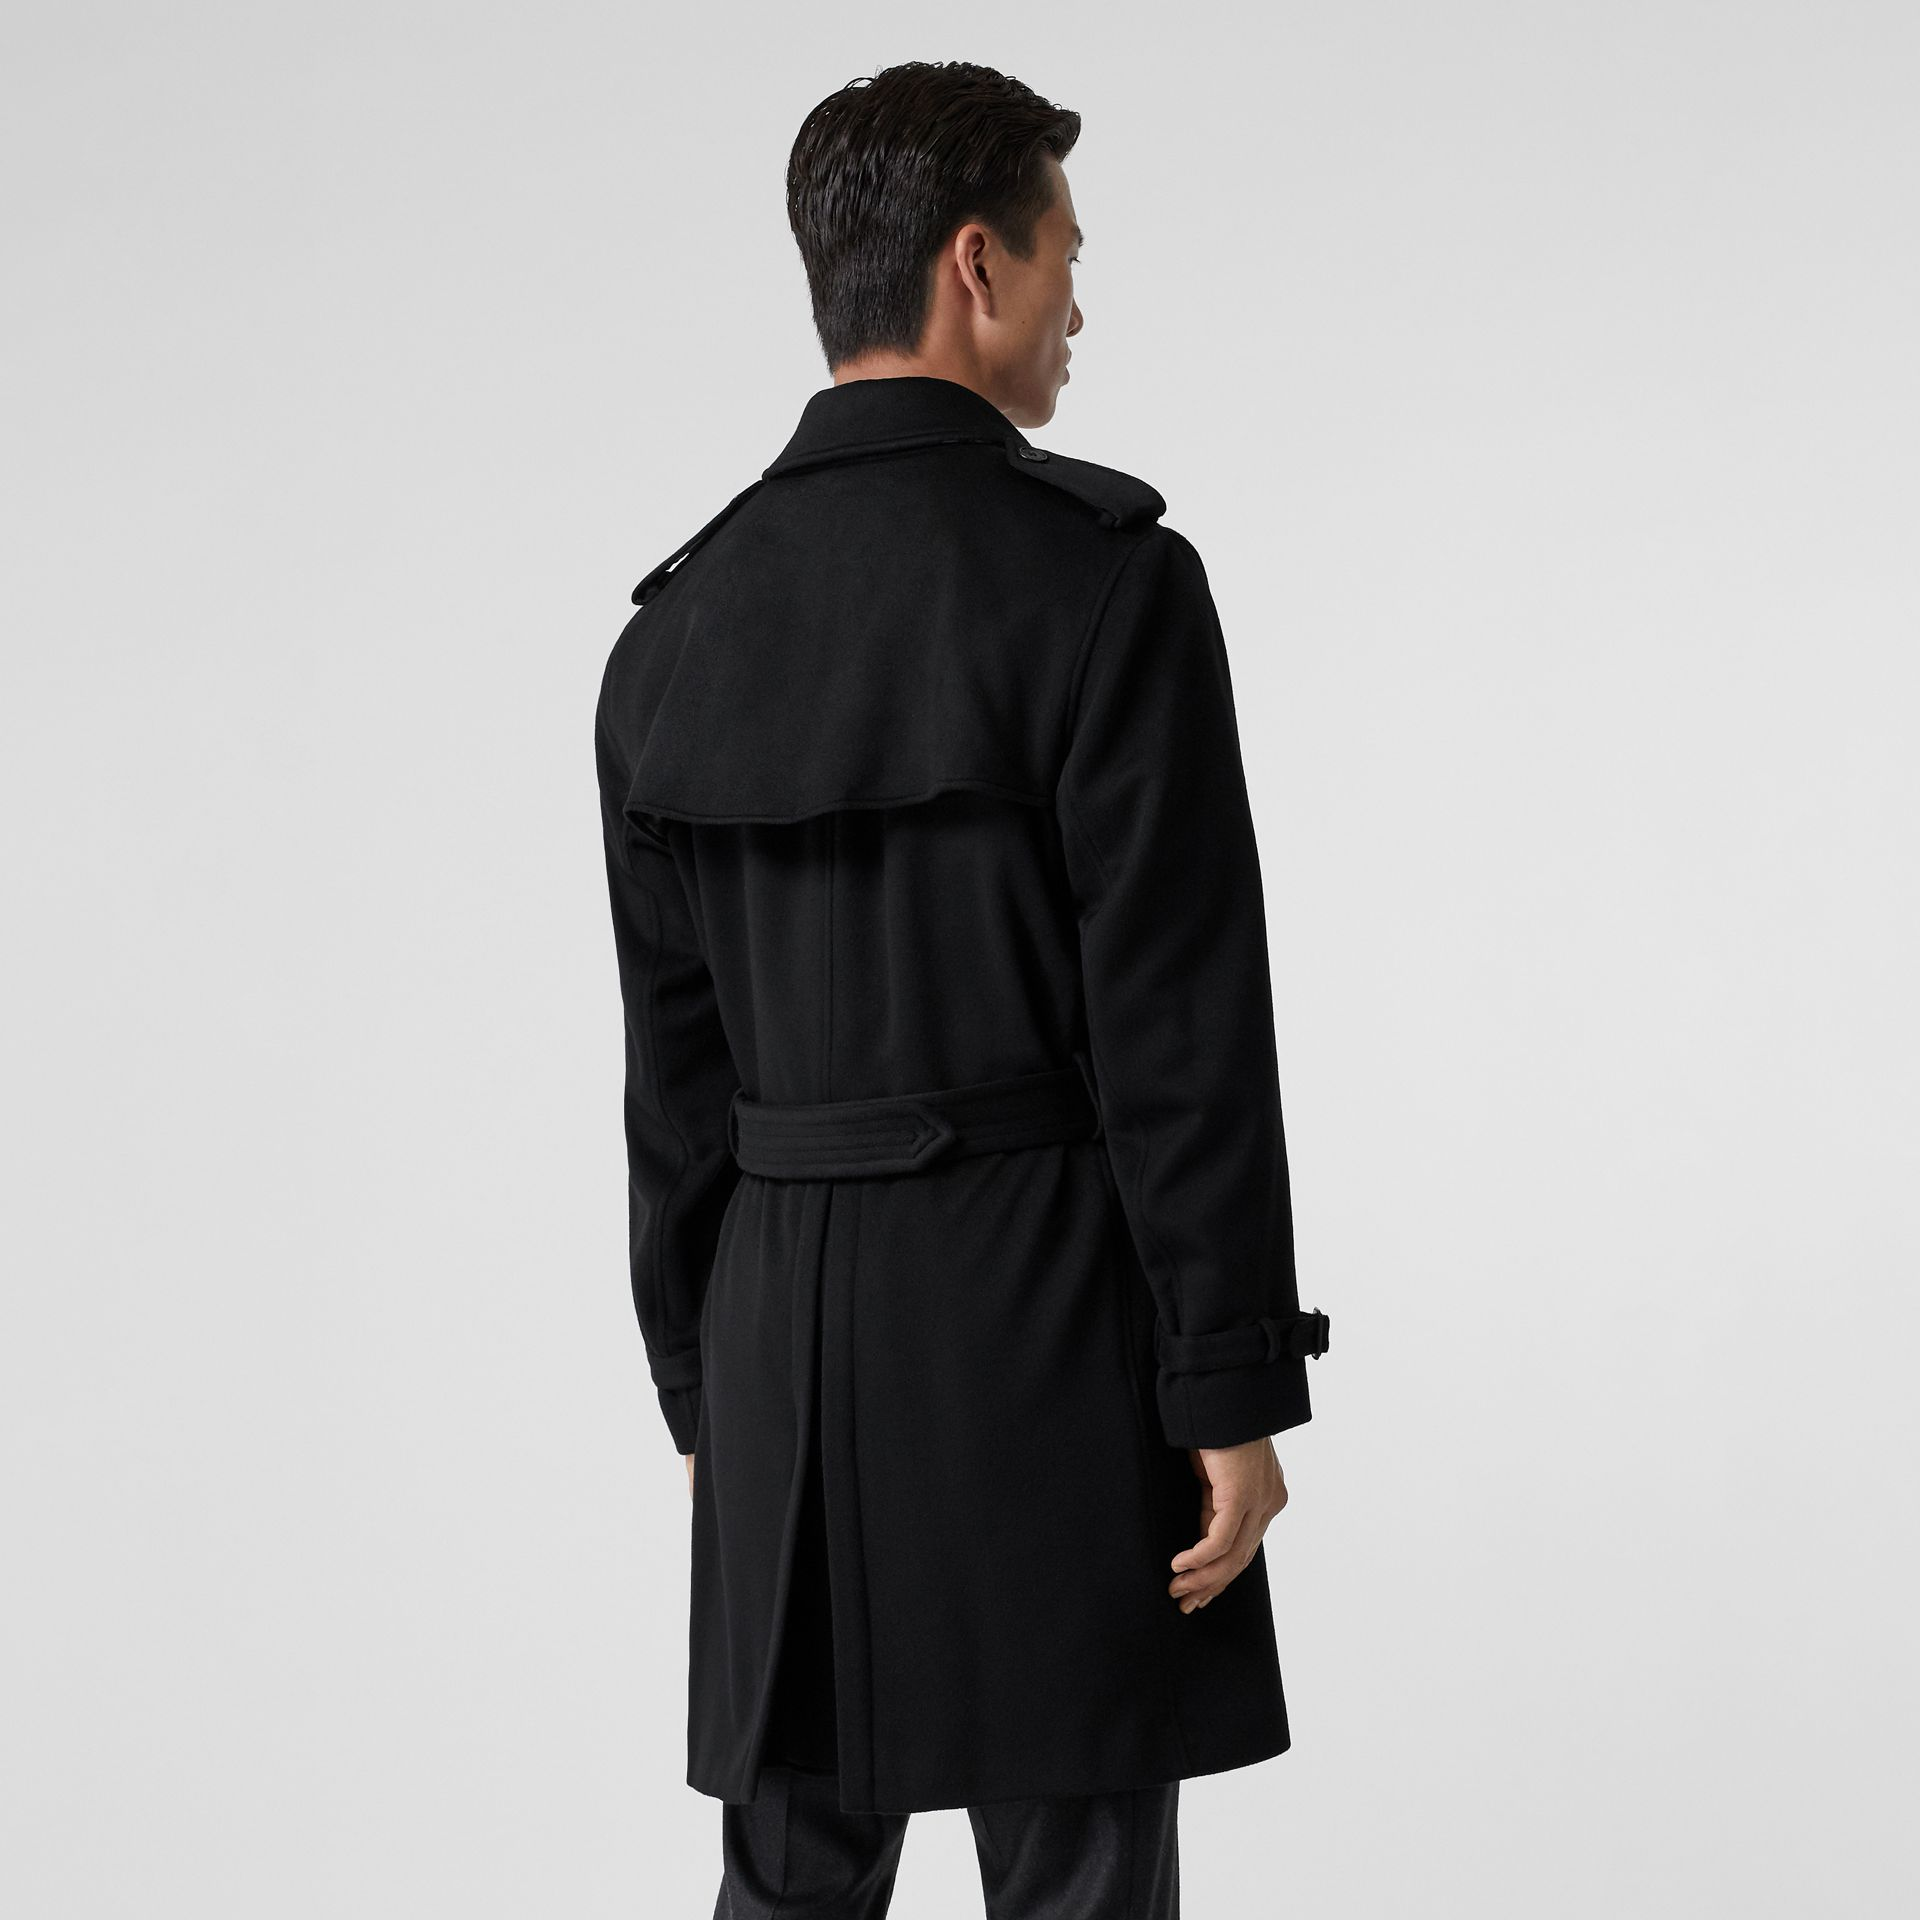 Cashmere Trench Coat in Black - Men | Burberry Australia - gallery image 2